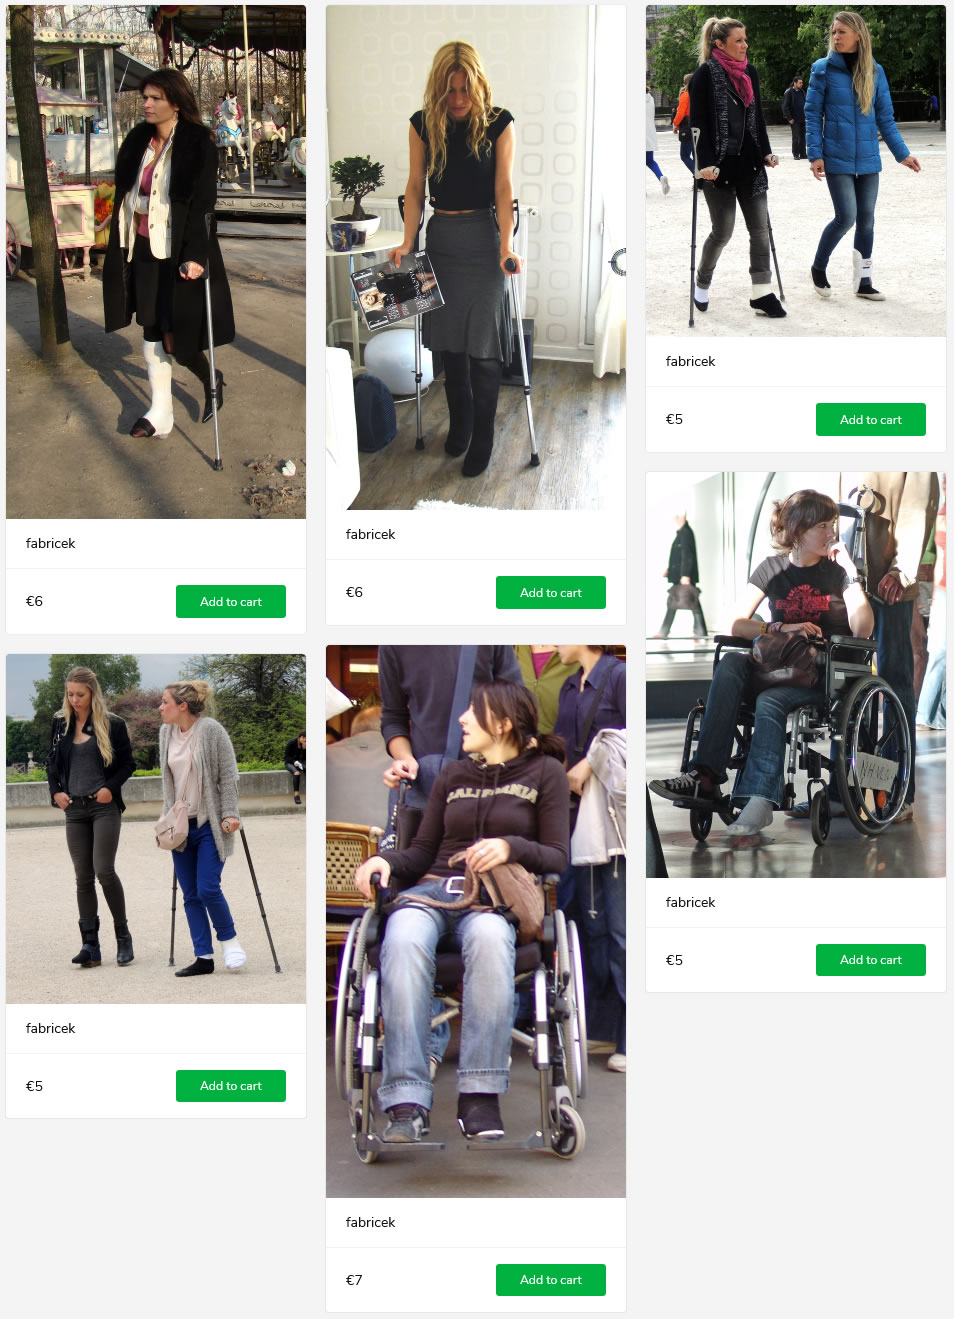 6 sets of women (models + sightings) with casted and/or braced legs - some on crutches, some in wheelchairs.